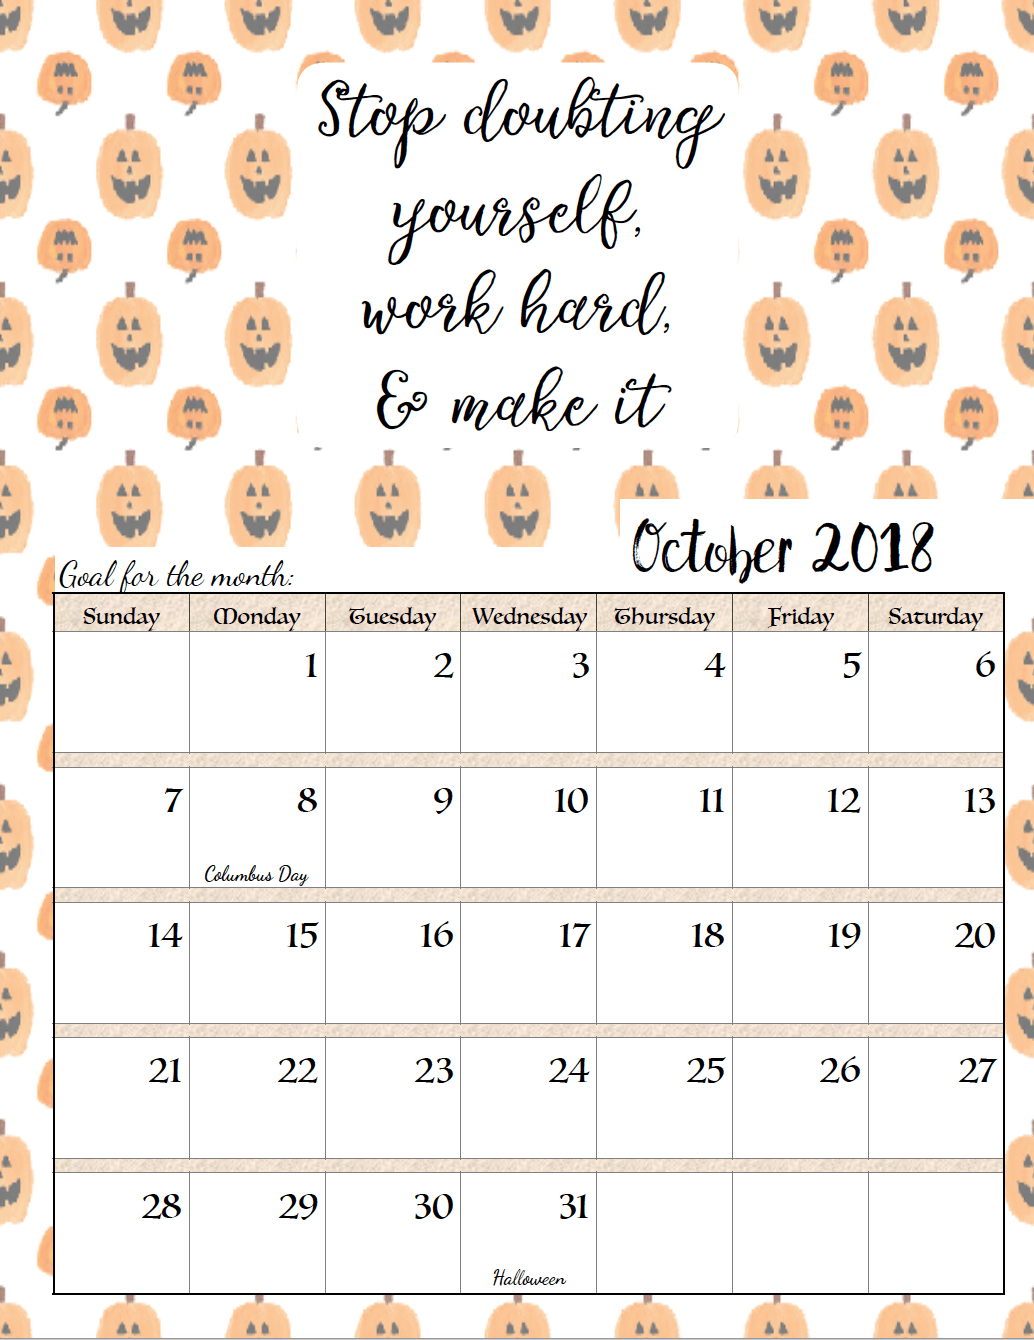 2018 Calendar Inspirational : Free printable monthly motivational calendars